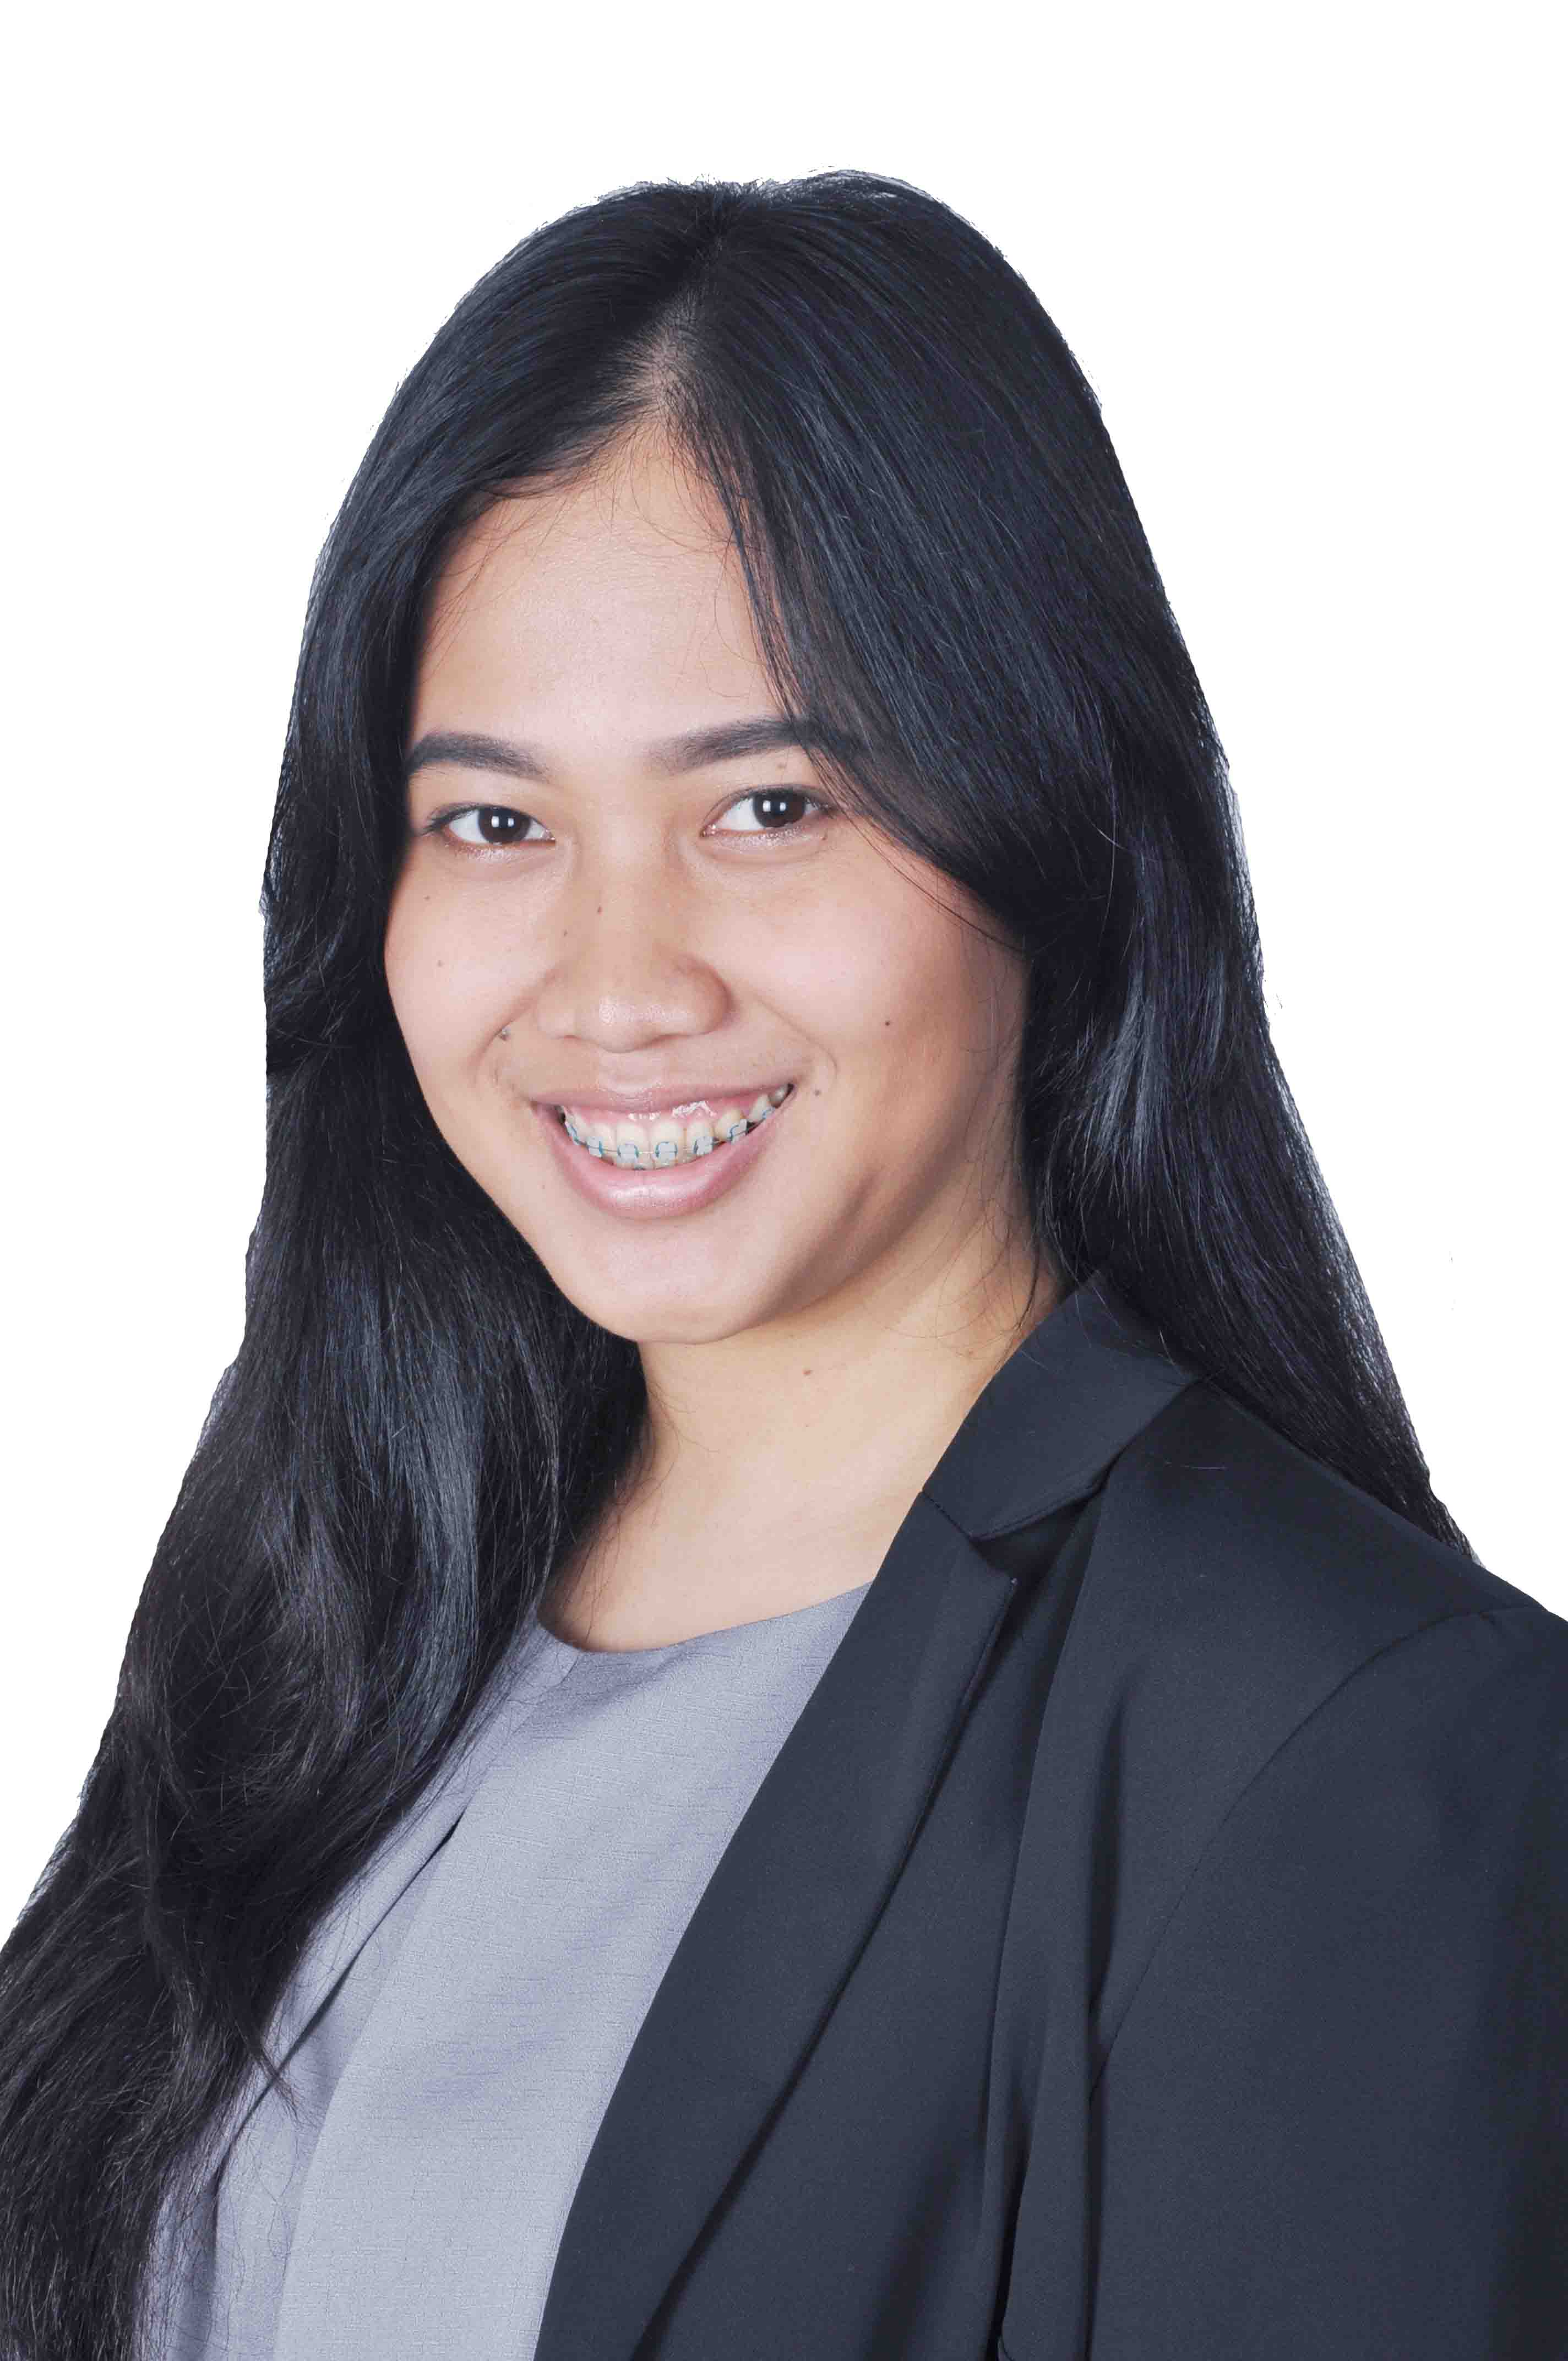 Megaria Agustina Director of International Partnership and Promotion